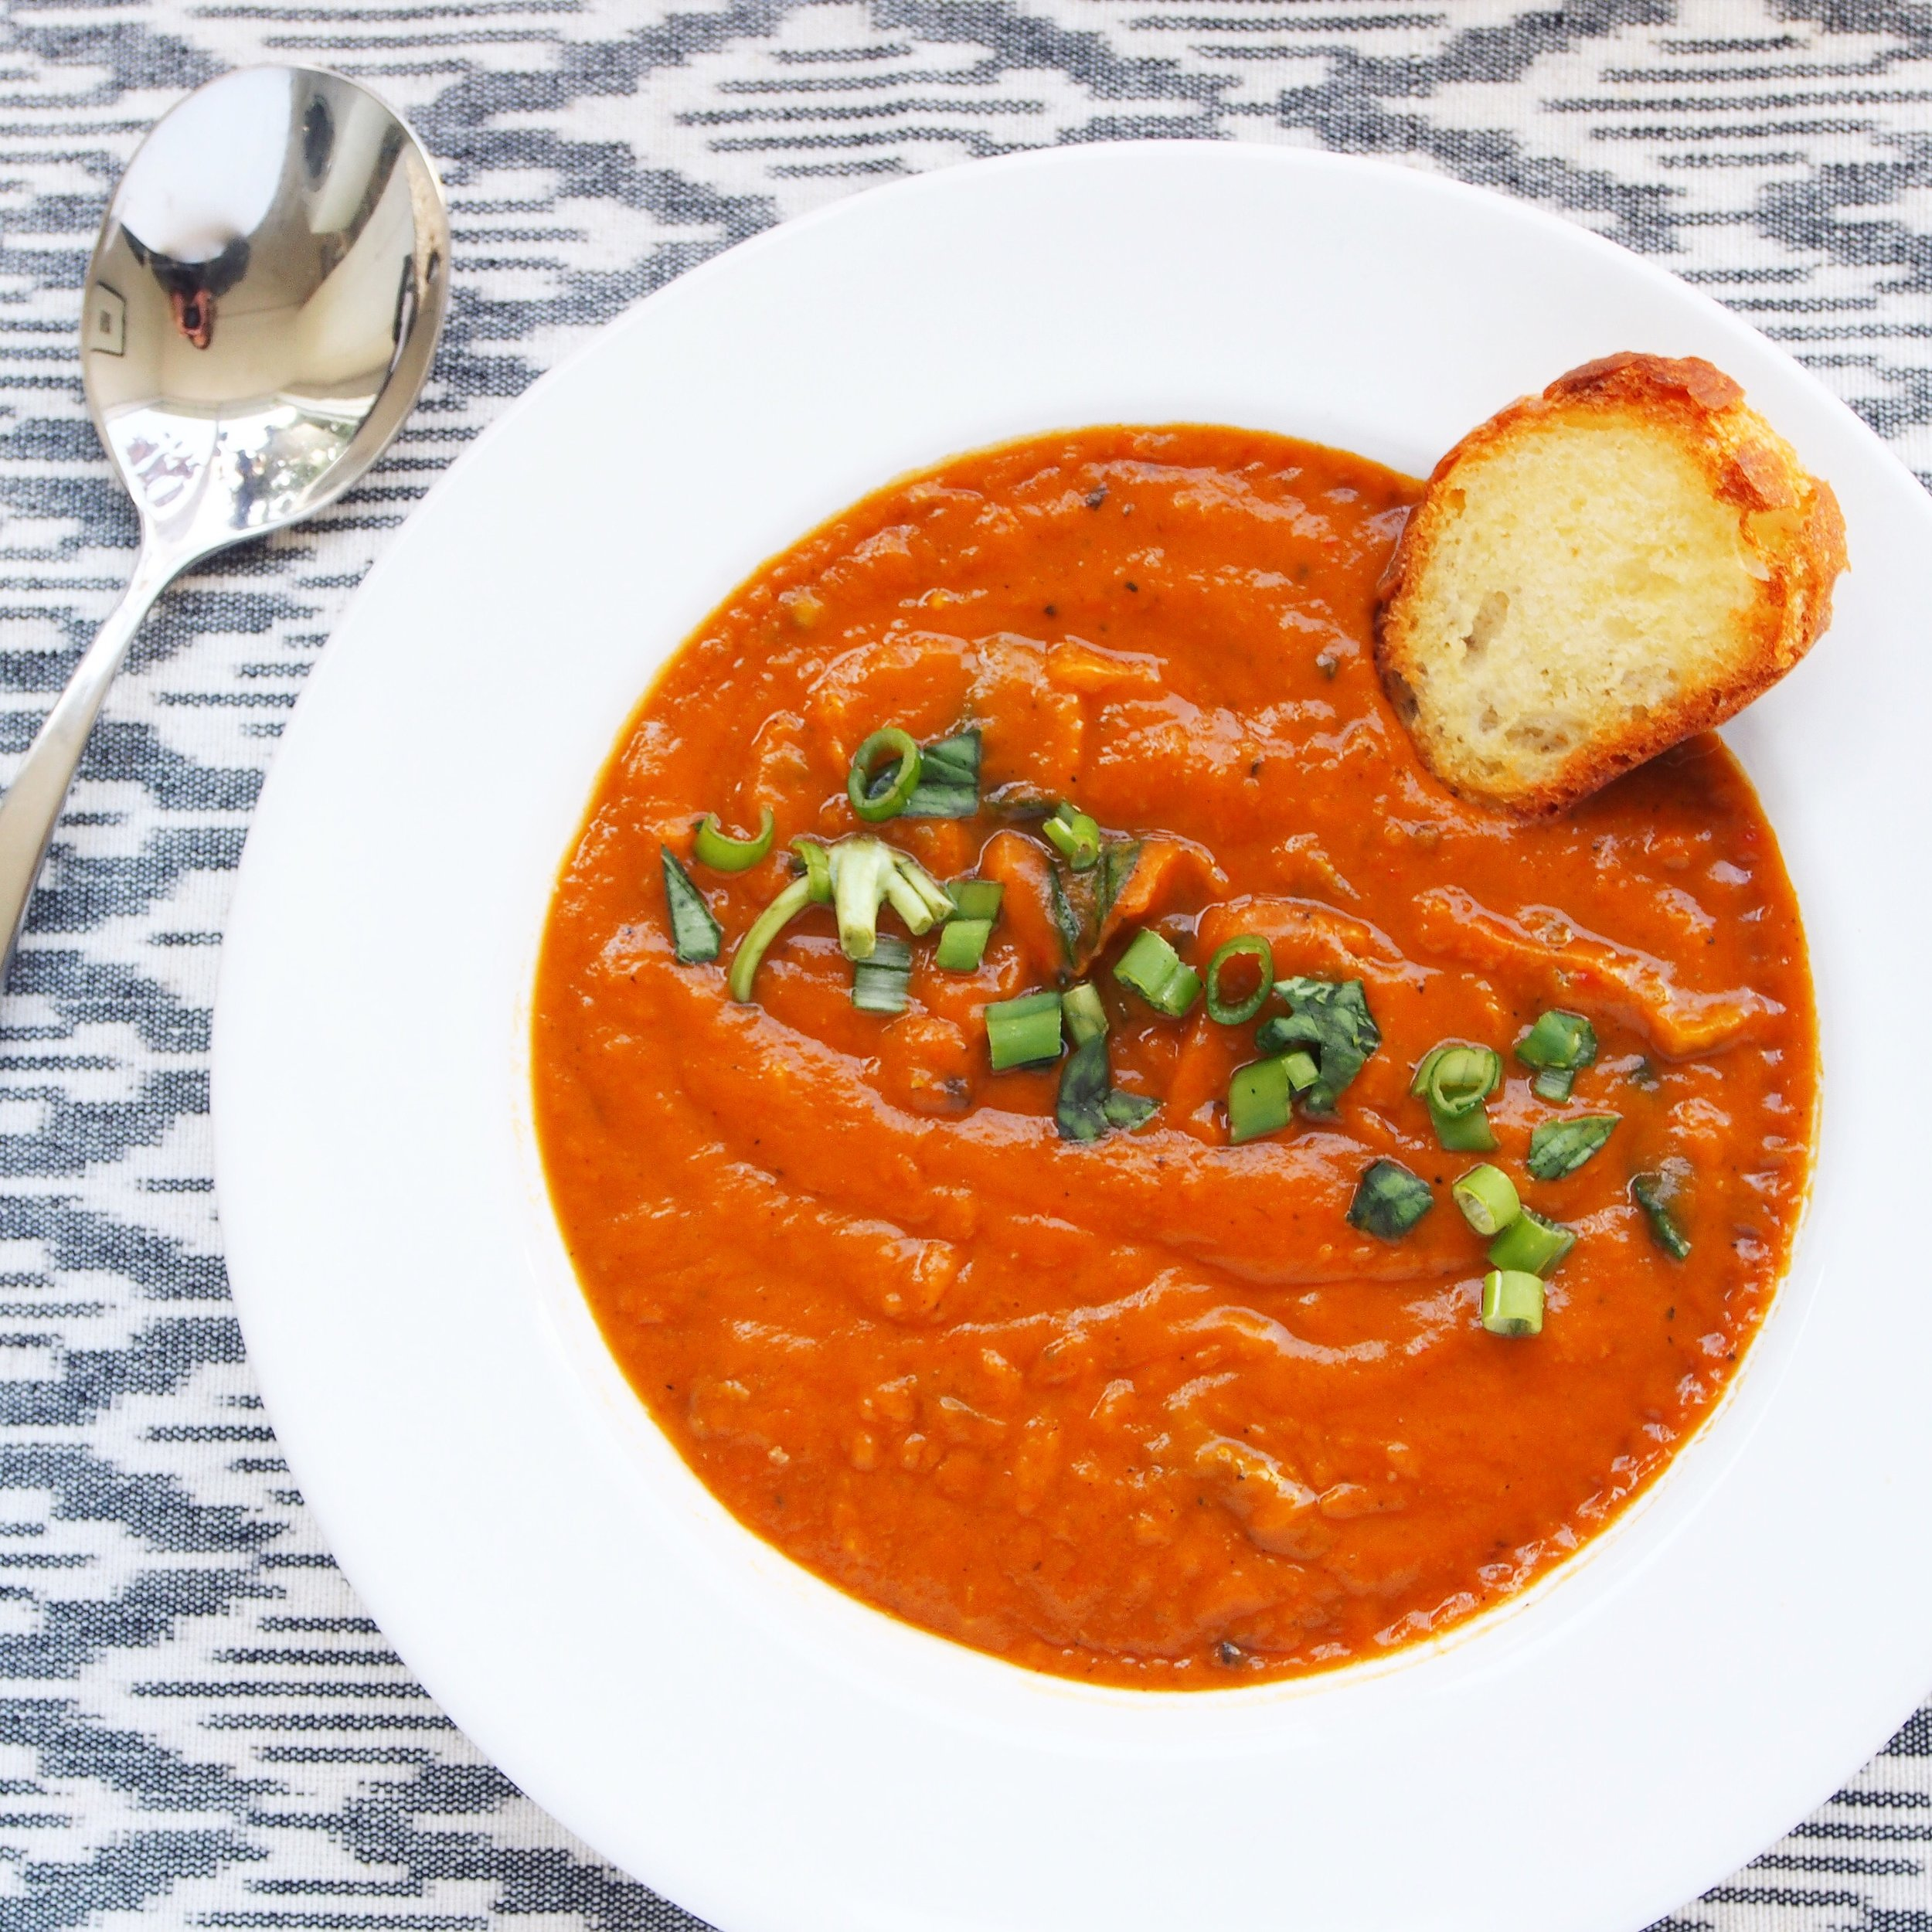 This Roasted Red Bell Pepper and Sweet Potato Soup recipe is a great vegan soup recipe. The soup is healthy, nutrient-dense, and full of vitamins and minerals. It's a light soup recipe that will keep you feeling great in summer!